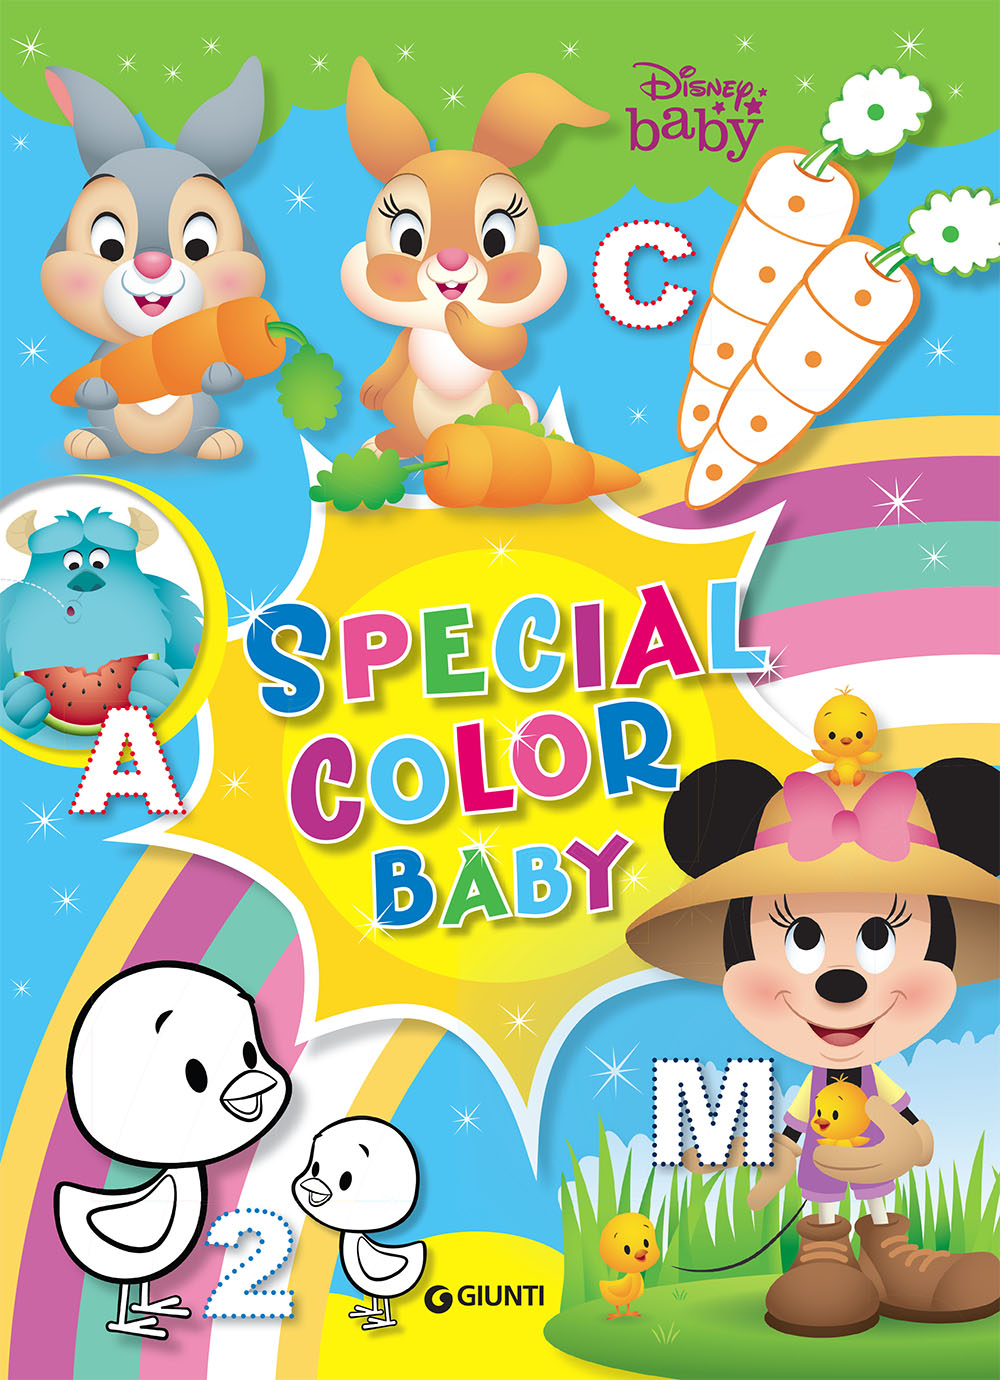 SPECIAL COLOR BABY DISNEY BABY